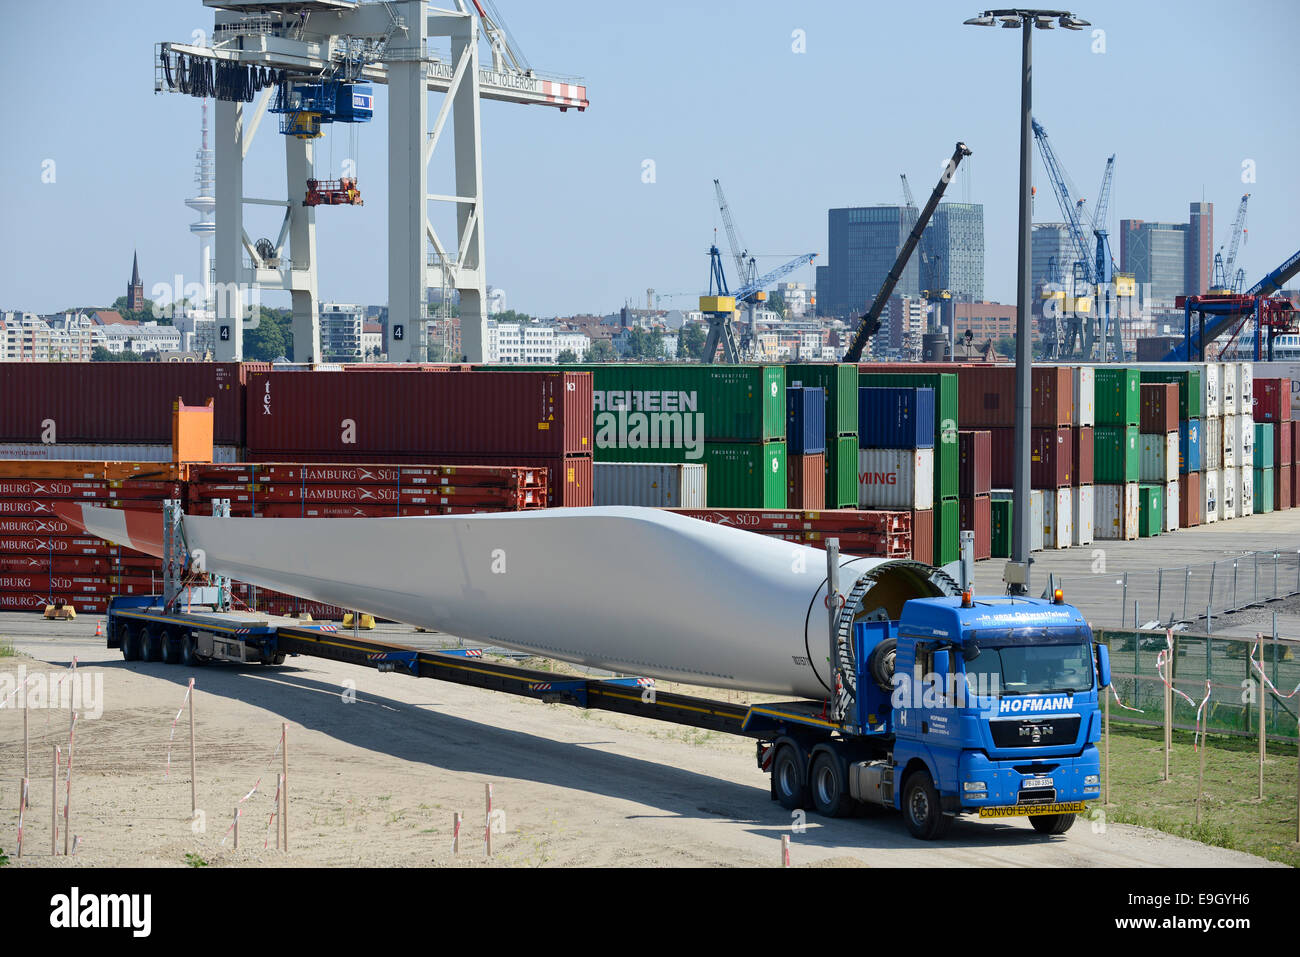 GERMANY Hamburg, truck transport rotor blade for new Nordex wind turbine from harbour to construction site - Stock Image